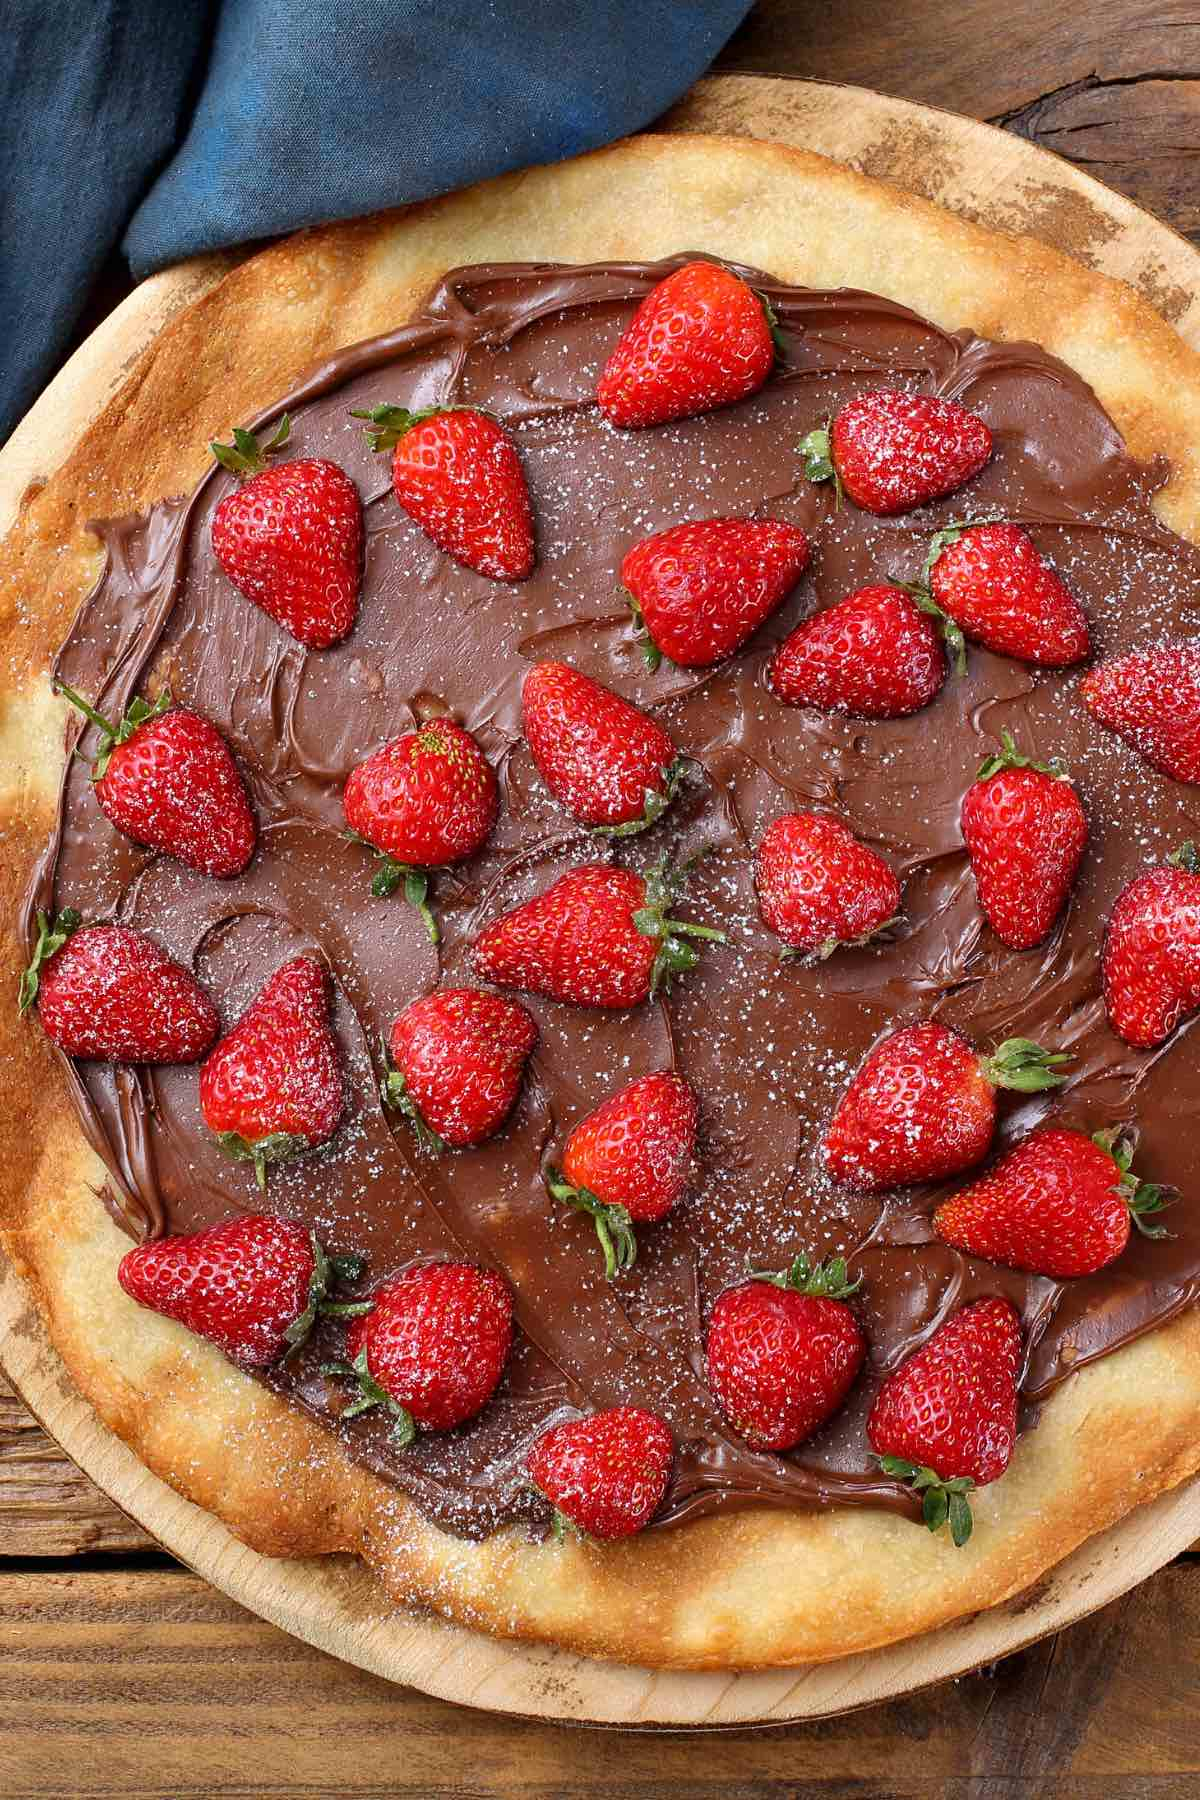 This Nutella Pizza is a must-try dessert that's sure to impress your guest. It's perfectly easy to make – this recipe skips out on the tomato and cheese in favor of adding chocolate spread onto the pizza crust, making a mouth-watering dessert. You can easily customize it with different topping ideas like strawberries, bananas, or marshmallows.